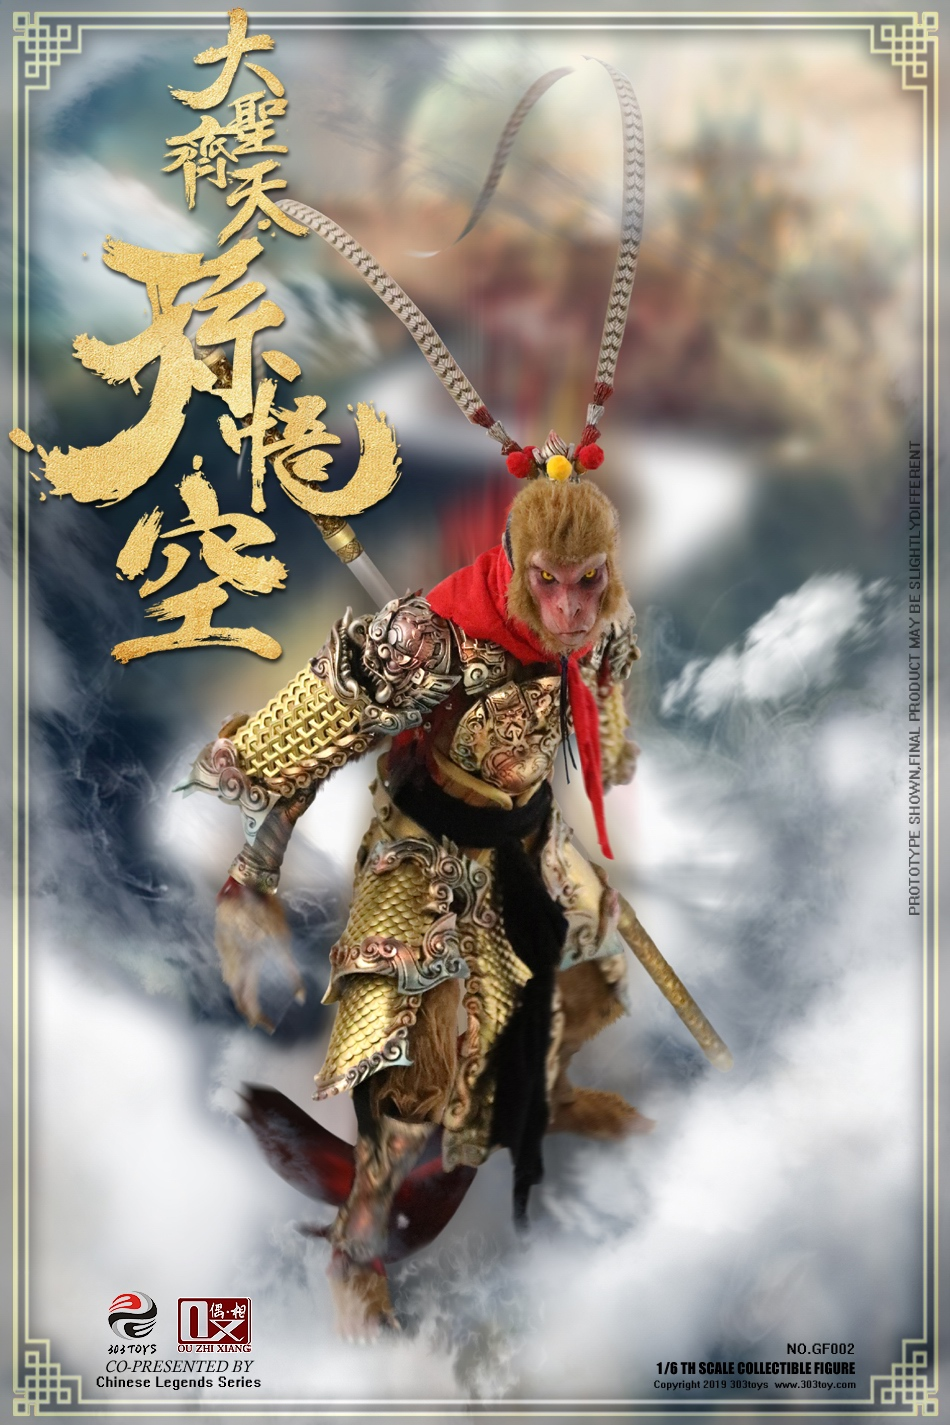 EveningPhase - NEW PRODUCT: 303TOYS x Evening phase: 1/6 National Wind Legend Series - Sun Wukong Monkey King Apocalypse & Dasheng Qitian & Stepping 18090710